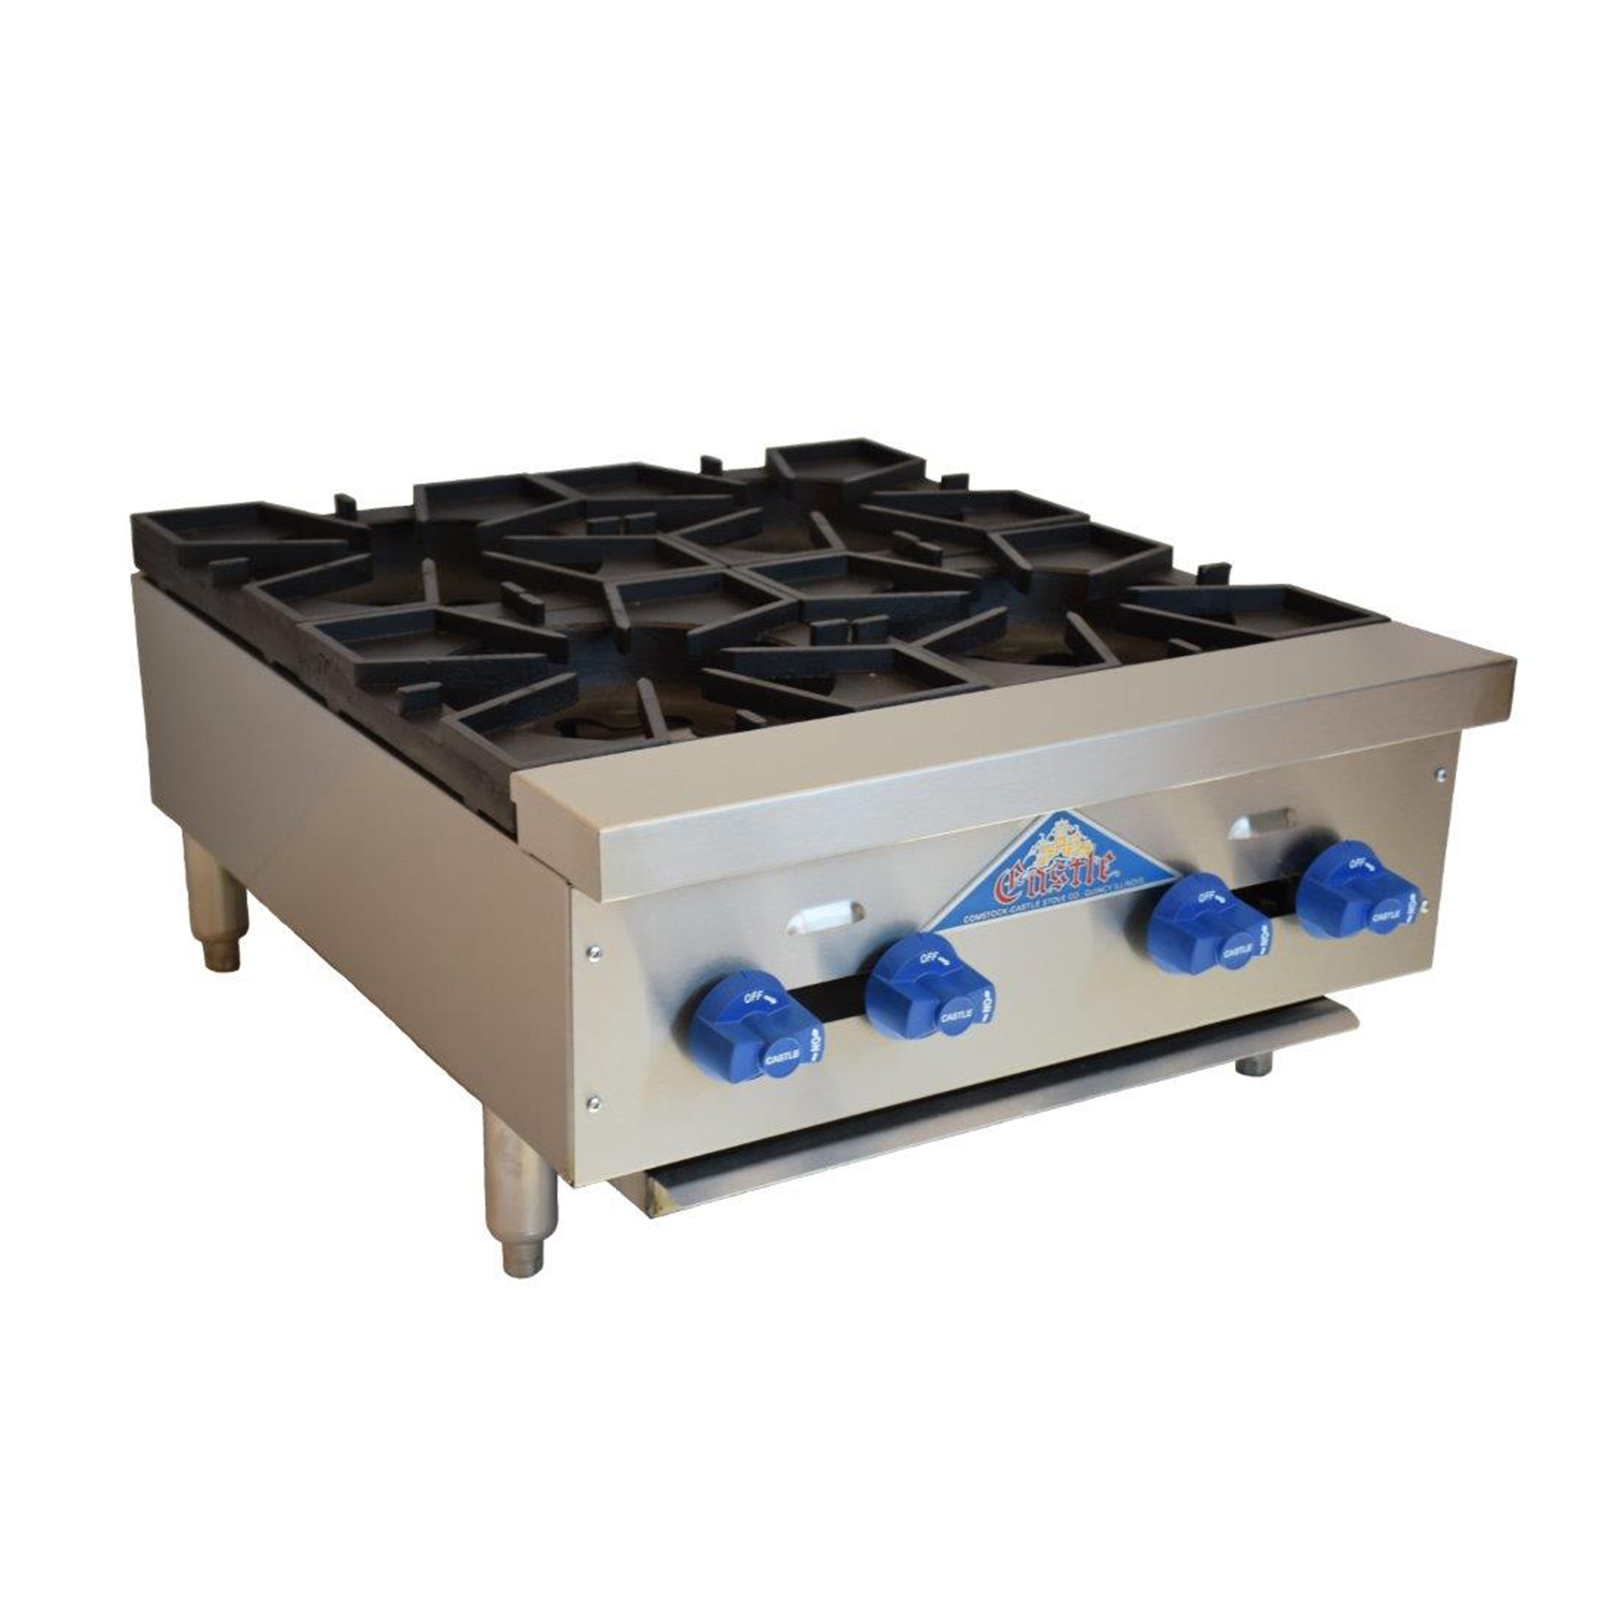 Comstock-Castle 3224OB hotplate, countertop, gas